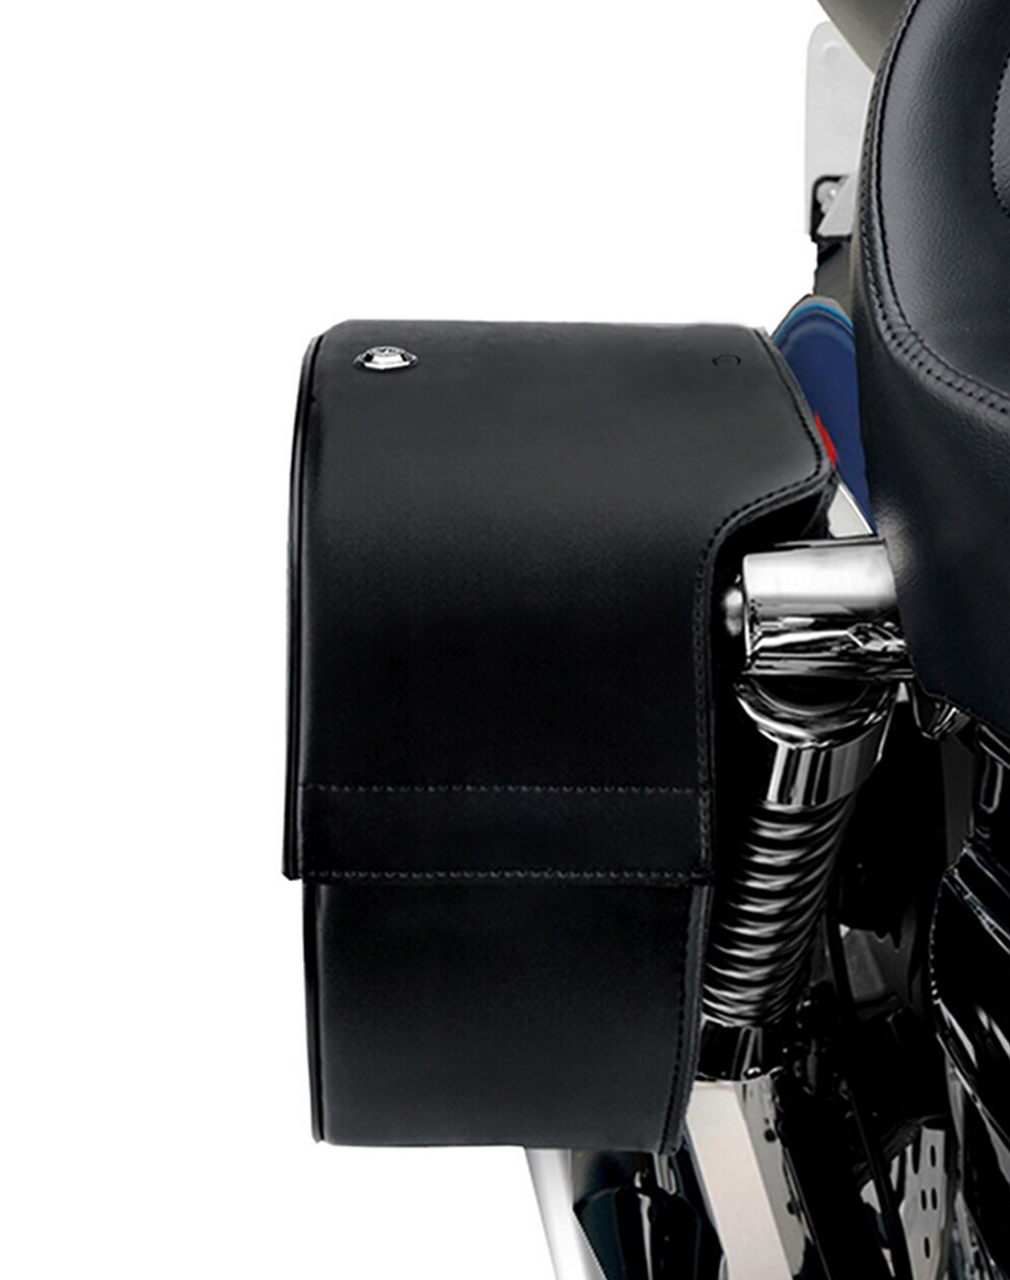 Viking Shock Cutout SS Large Slanted Studded Large Motorcycle Saddlebags For Harley Sportster Seventy Two 72 Shock cutout view